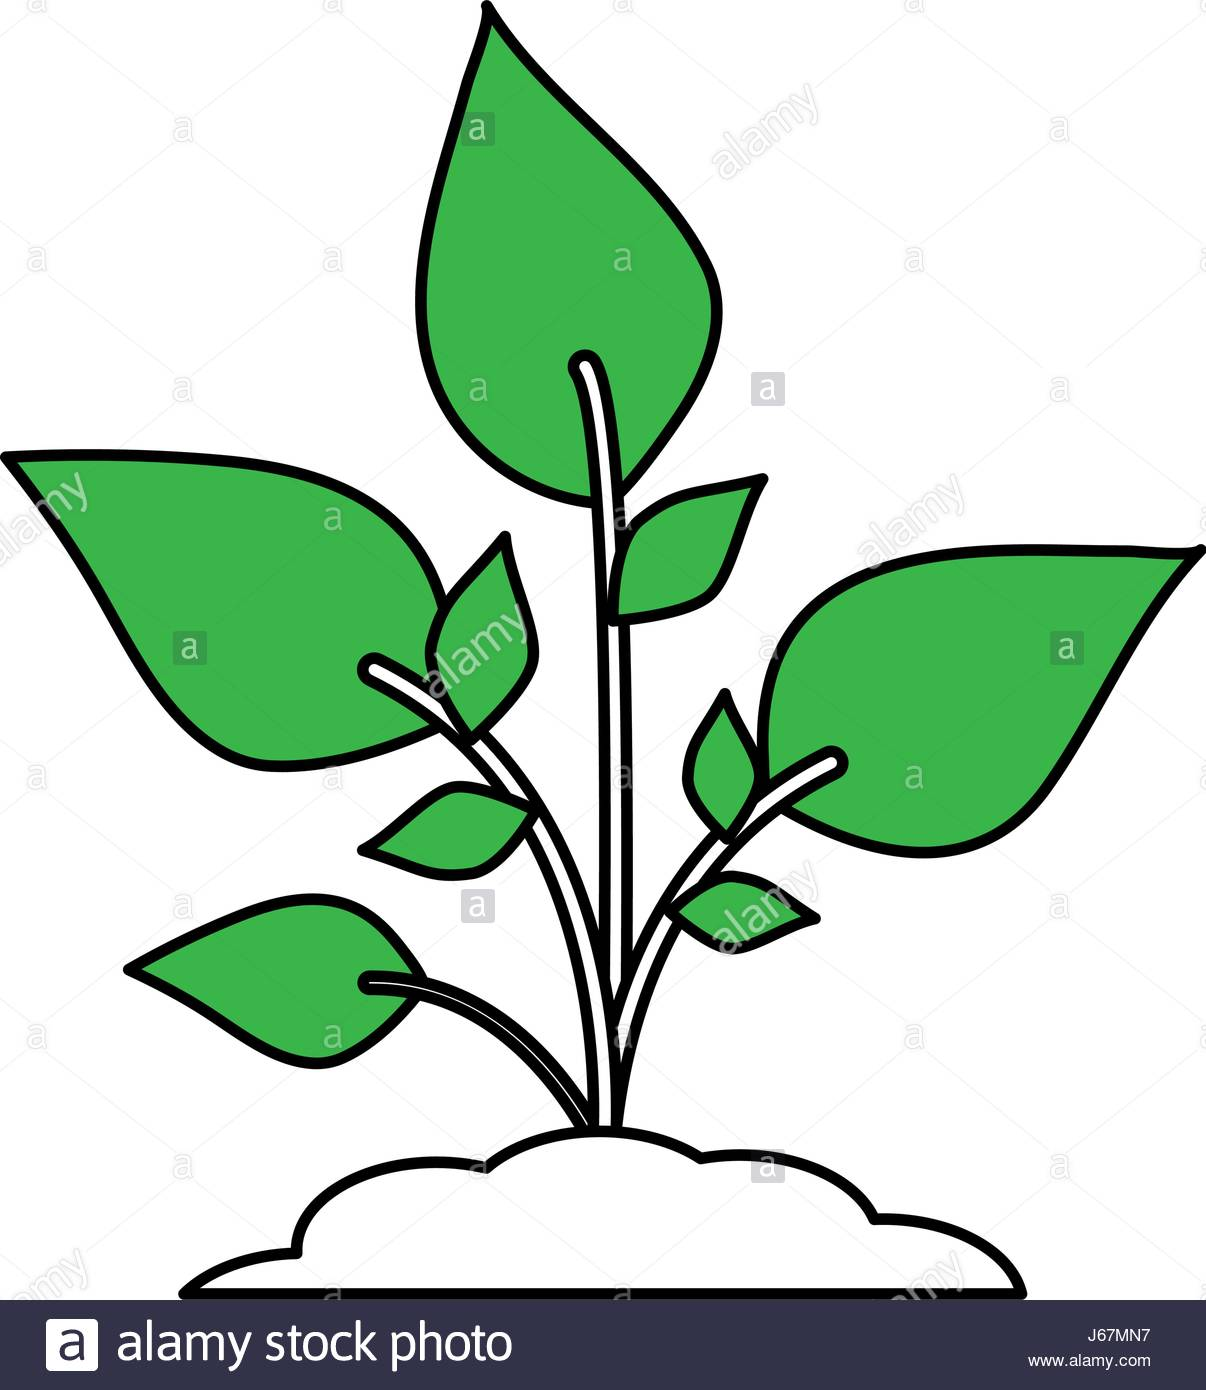 1206x1390 Color Silhouette Image Cartoon Green Plant With Leaves In Growth